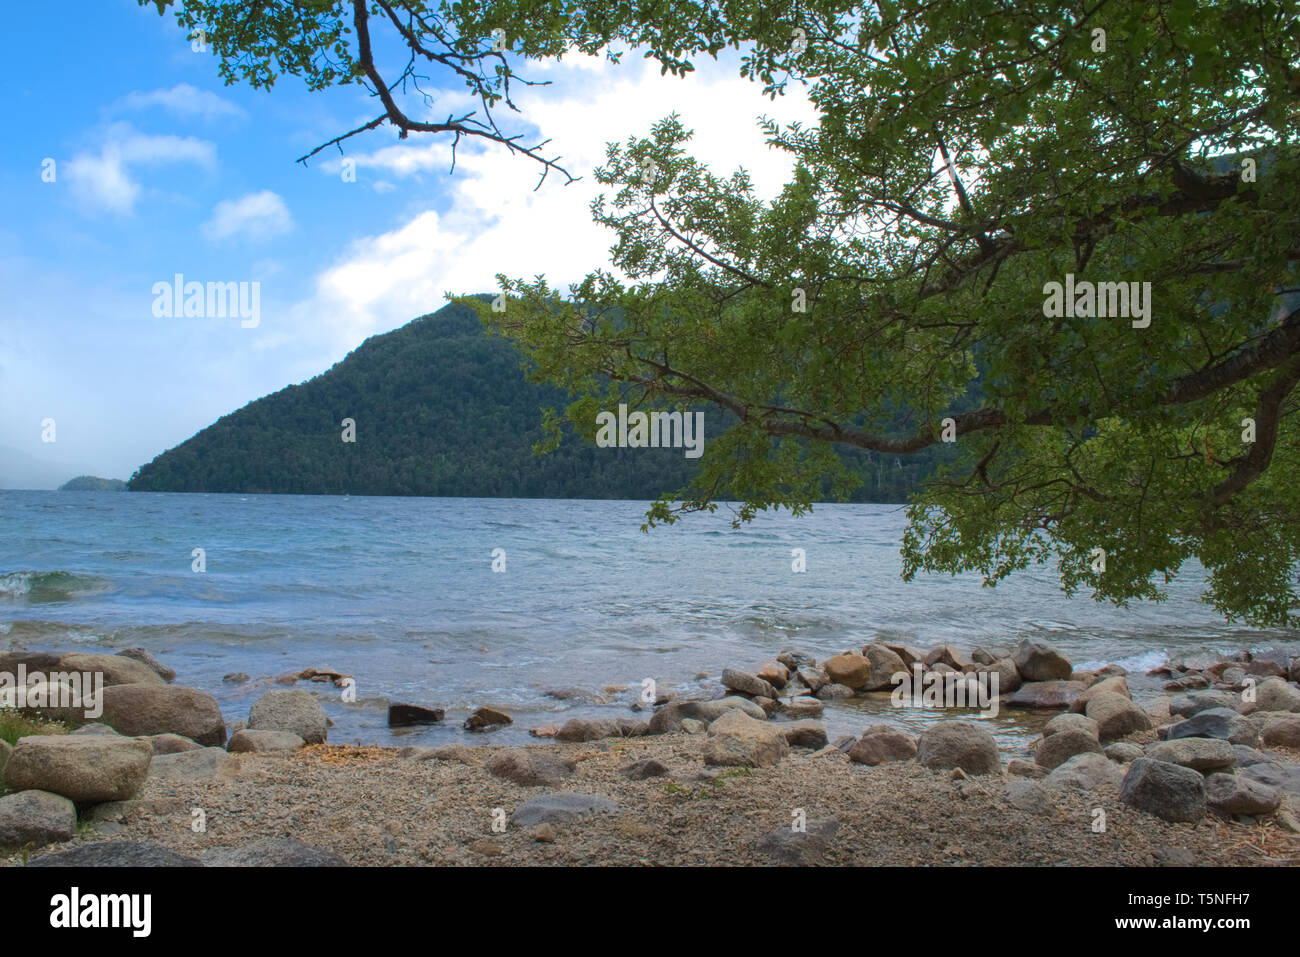 An idyllic view by the shore of Lago Hermoso (Lake Beautiful) in the Nahuel Huapi national park, Argentinian Patagonia. - Stock Image